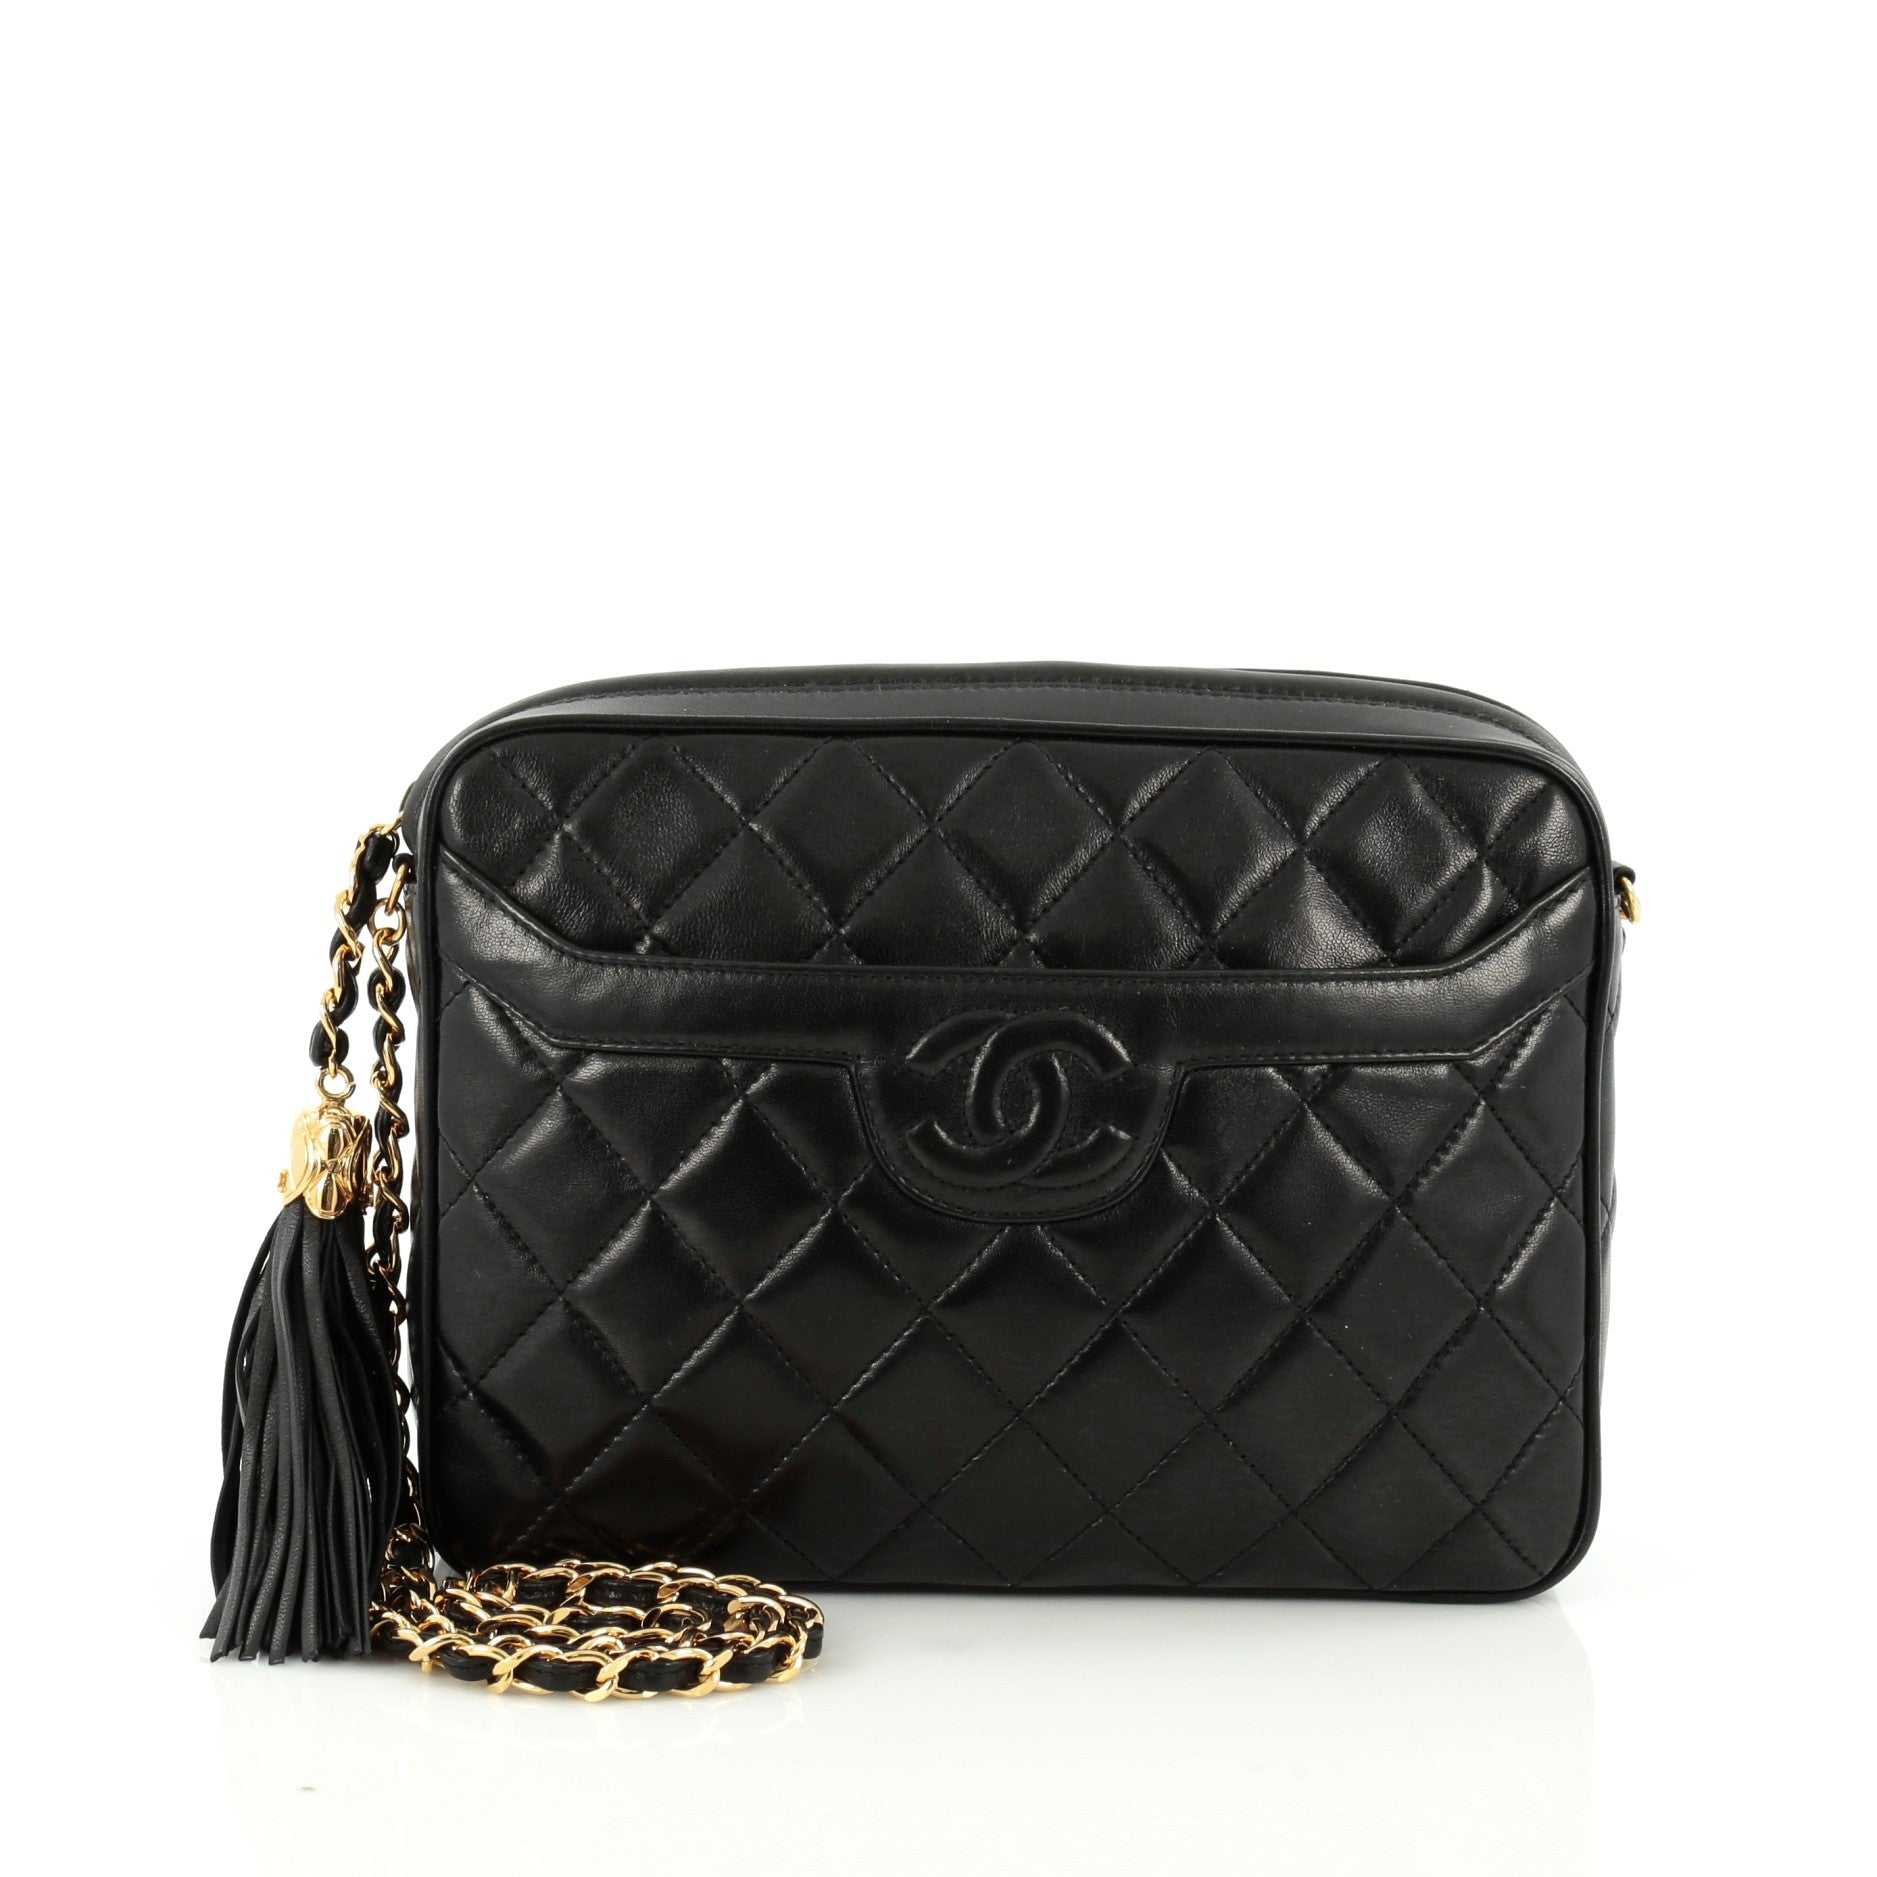 87f933aab04cc2 16915-01_Chanel_Vintage_Camera_Tassel_Bag_Quilted_2D_0003.jpg?v=1487722221